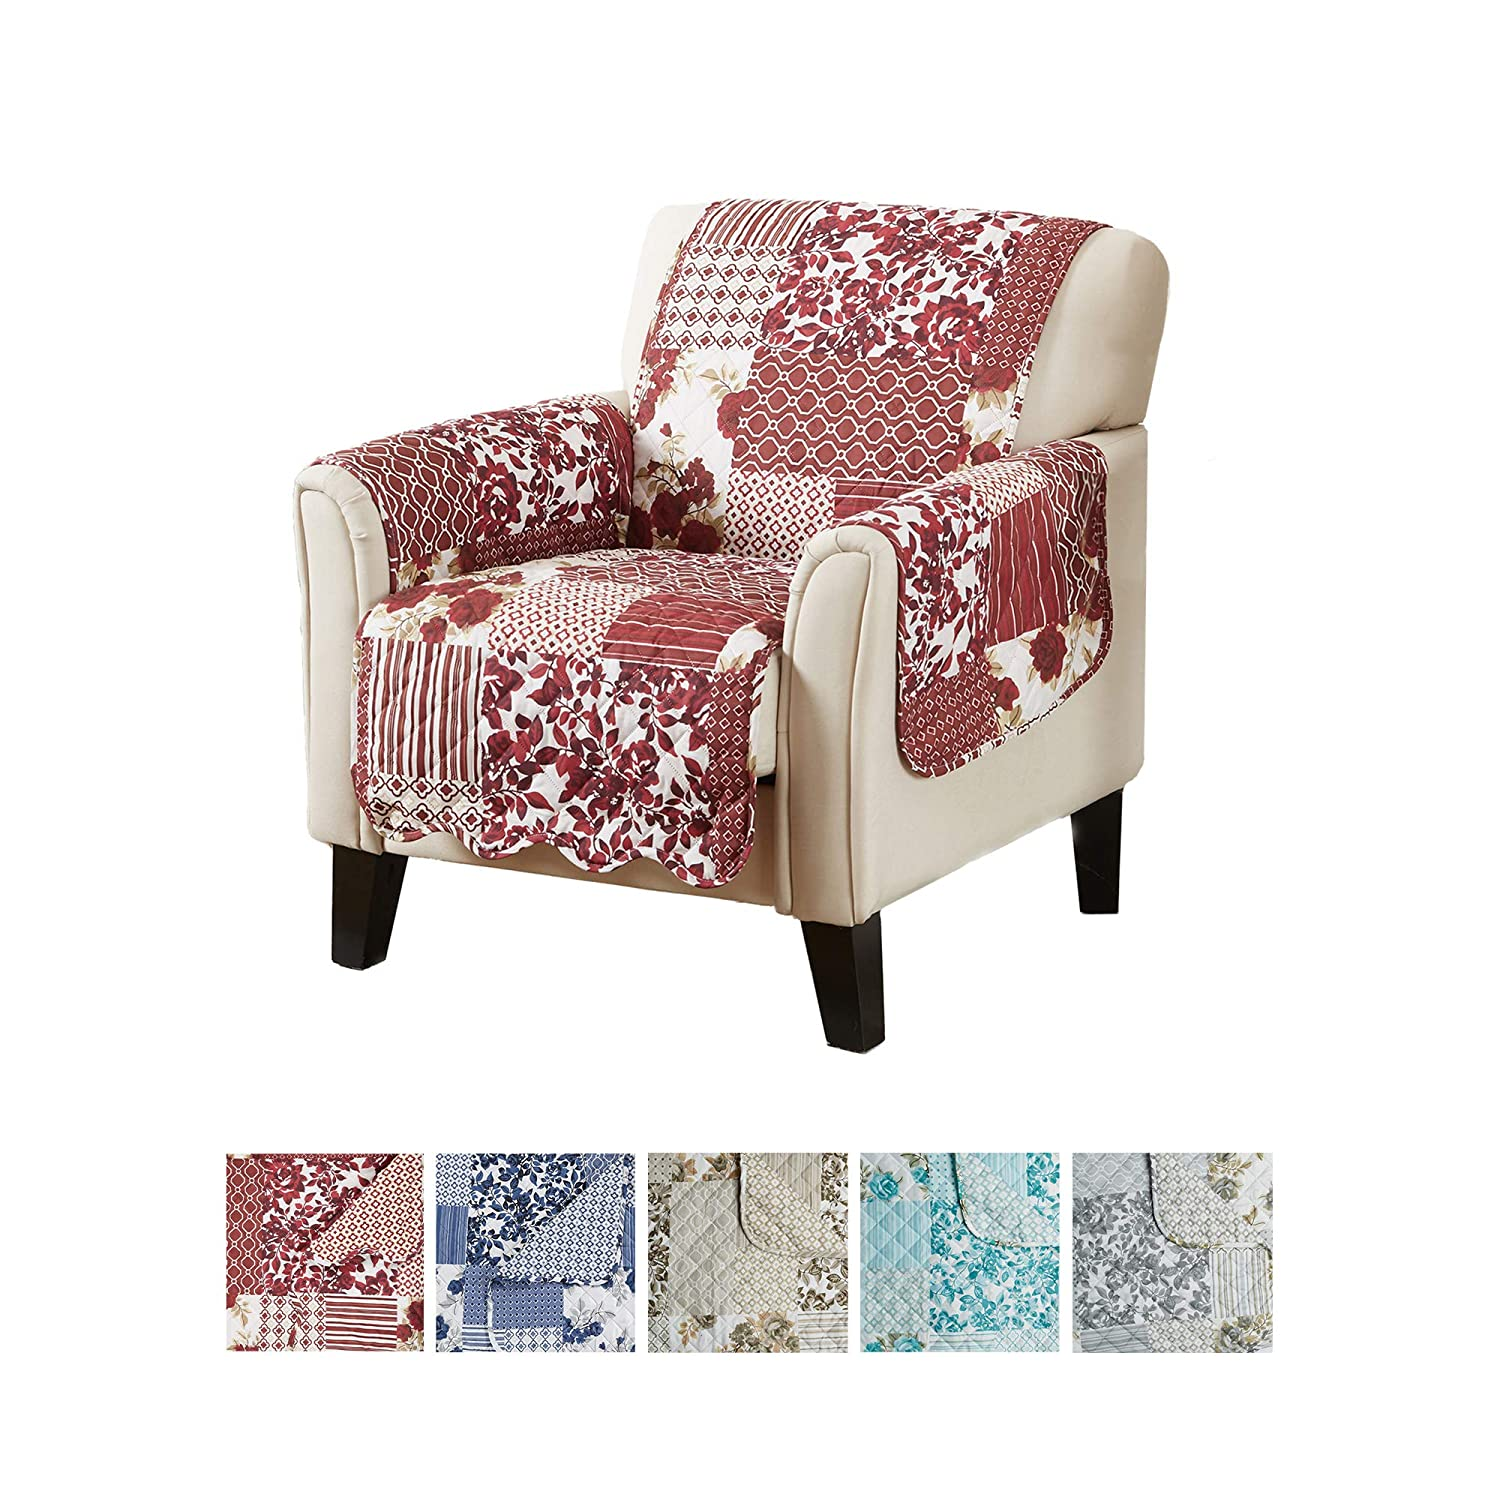 Great Bay Home Patchwork Scalloped Printed Furniture Protector. Stain Resistant Chair Cover. (24